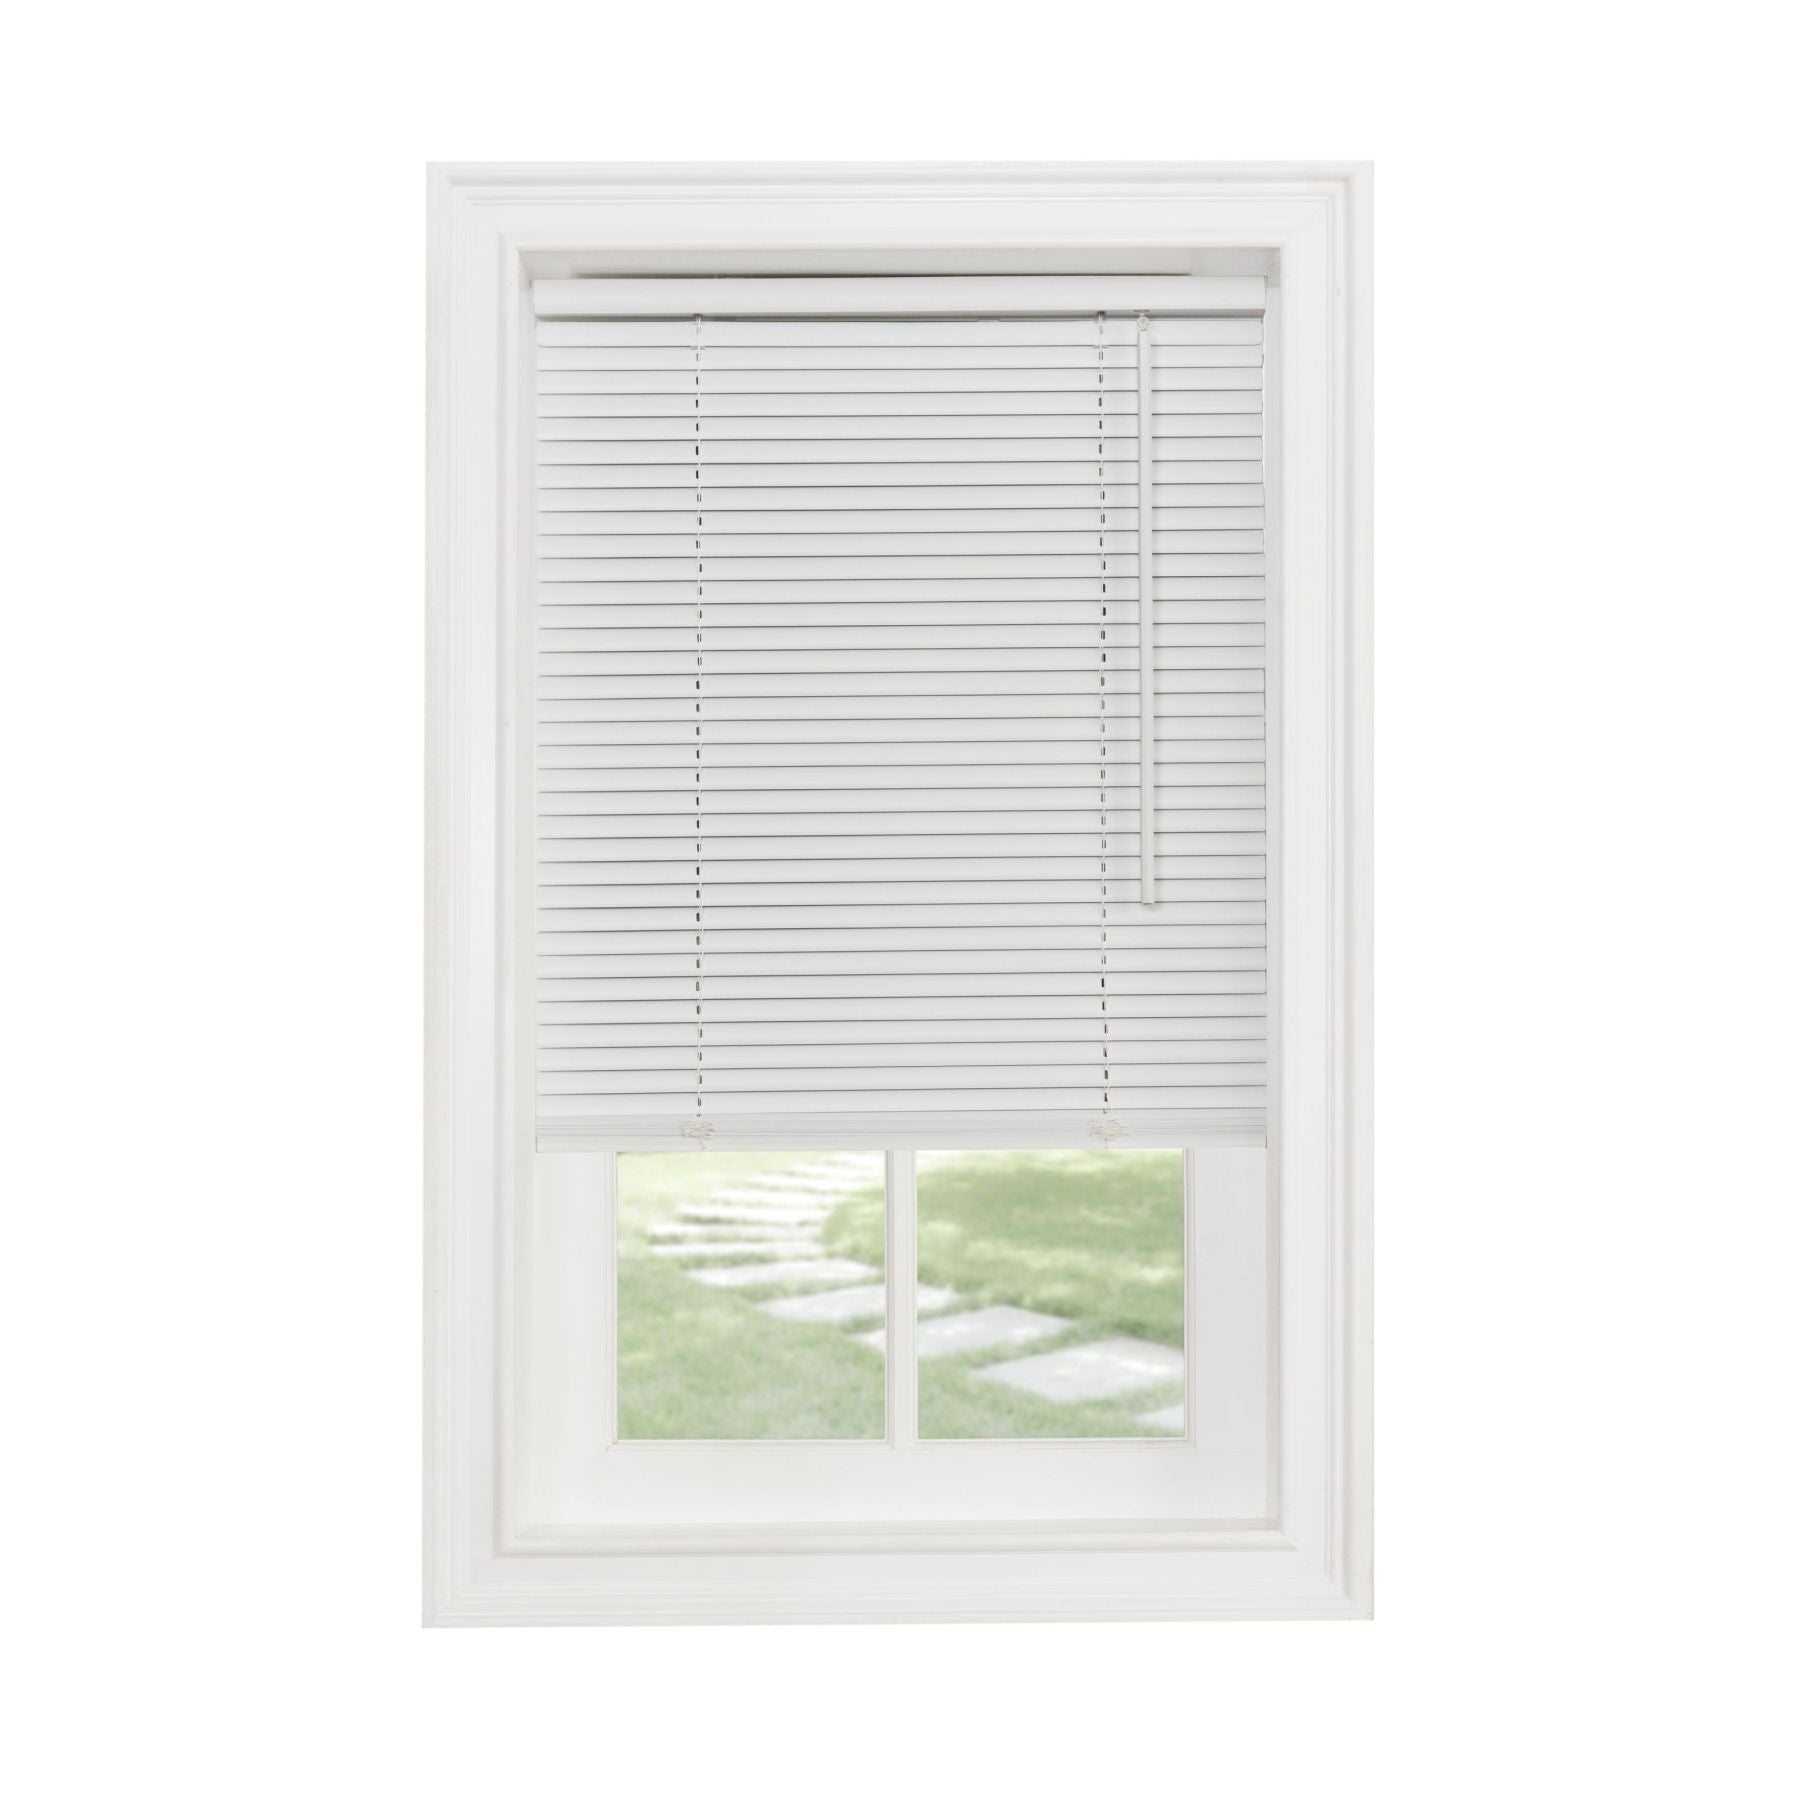 "Traditional Elegance Cordless Sunrise 1"" Light Filtering Mini Blind 30x64 - White"